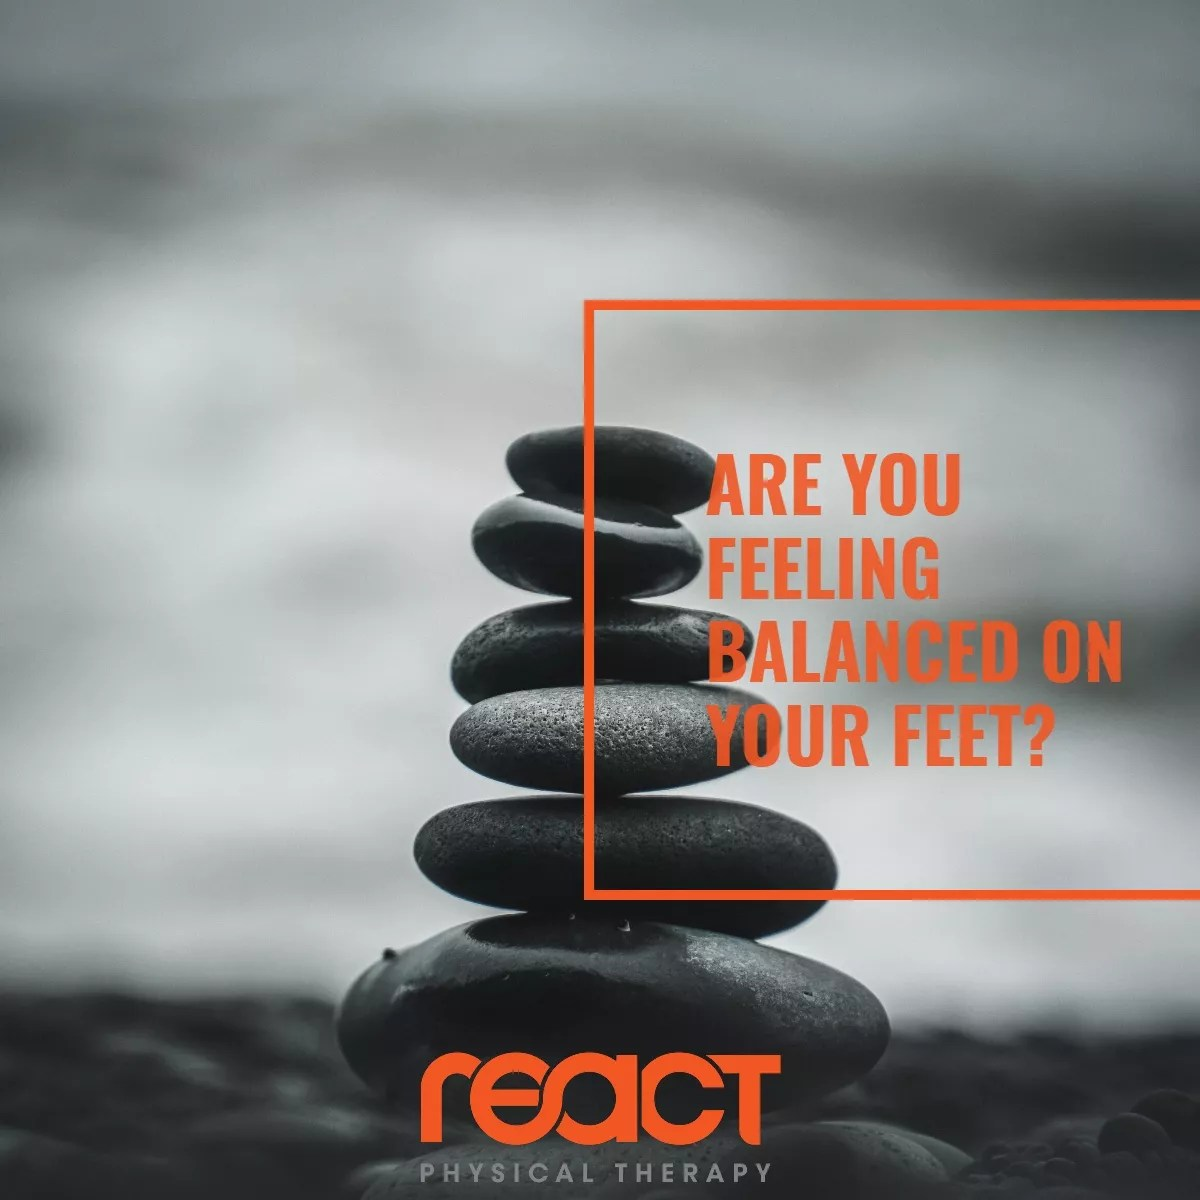 Are You Feeling Balanced On Your Feet?